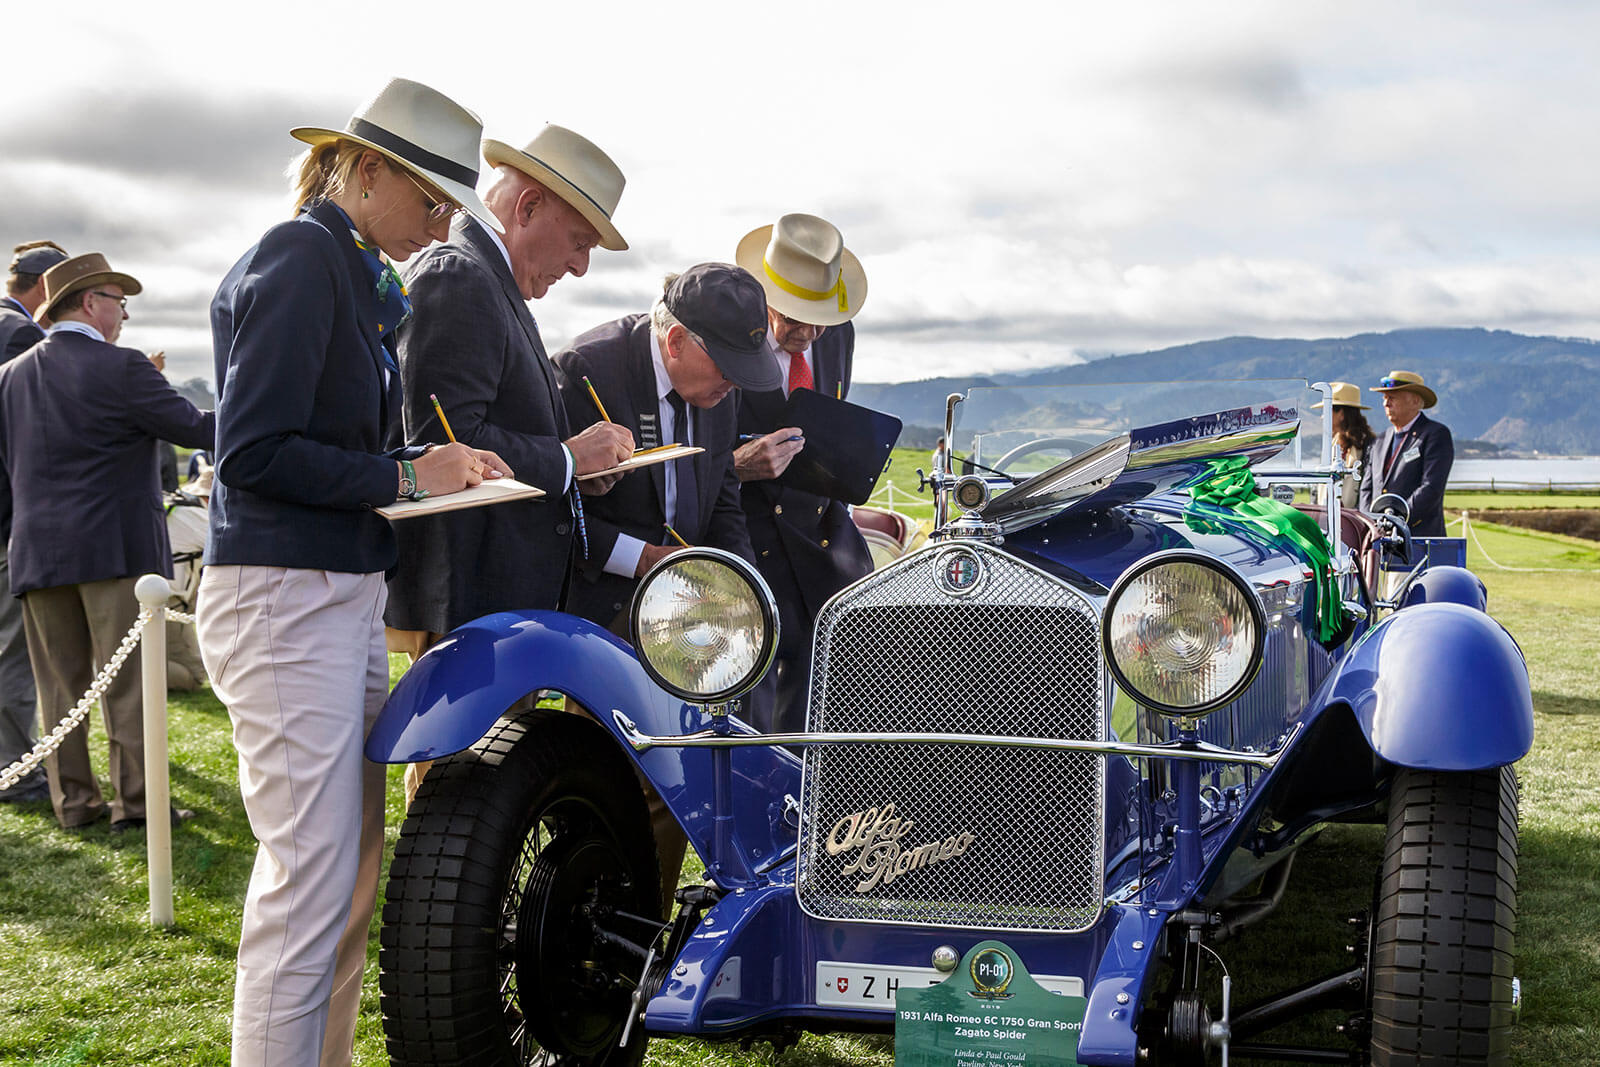 Judging at the Pebble Beach Concours d'Elegance